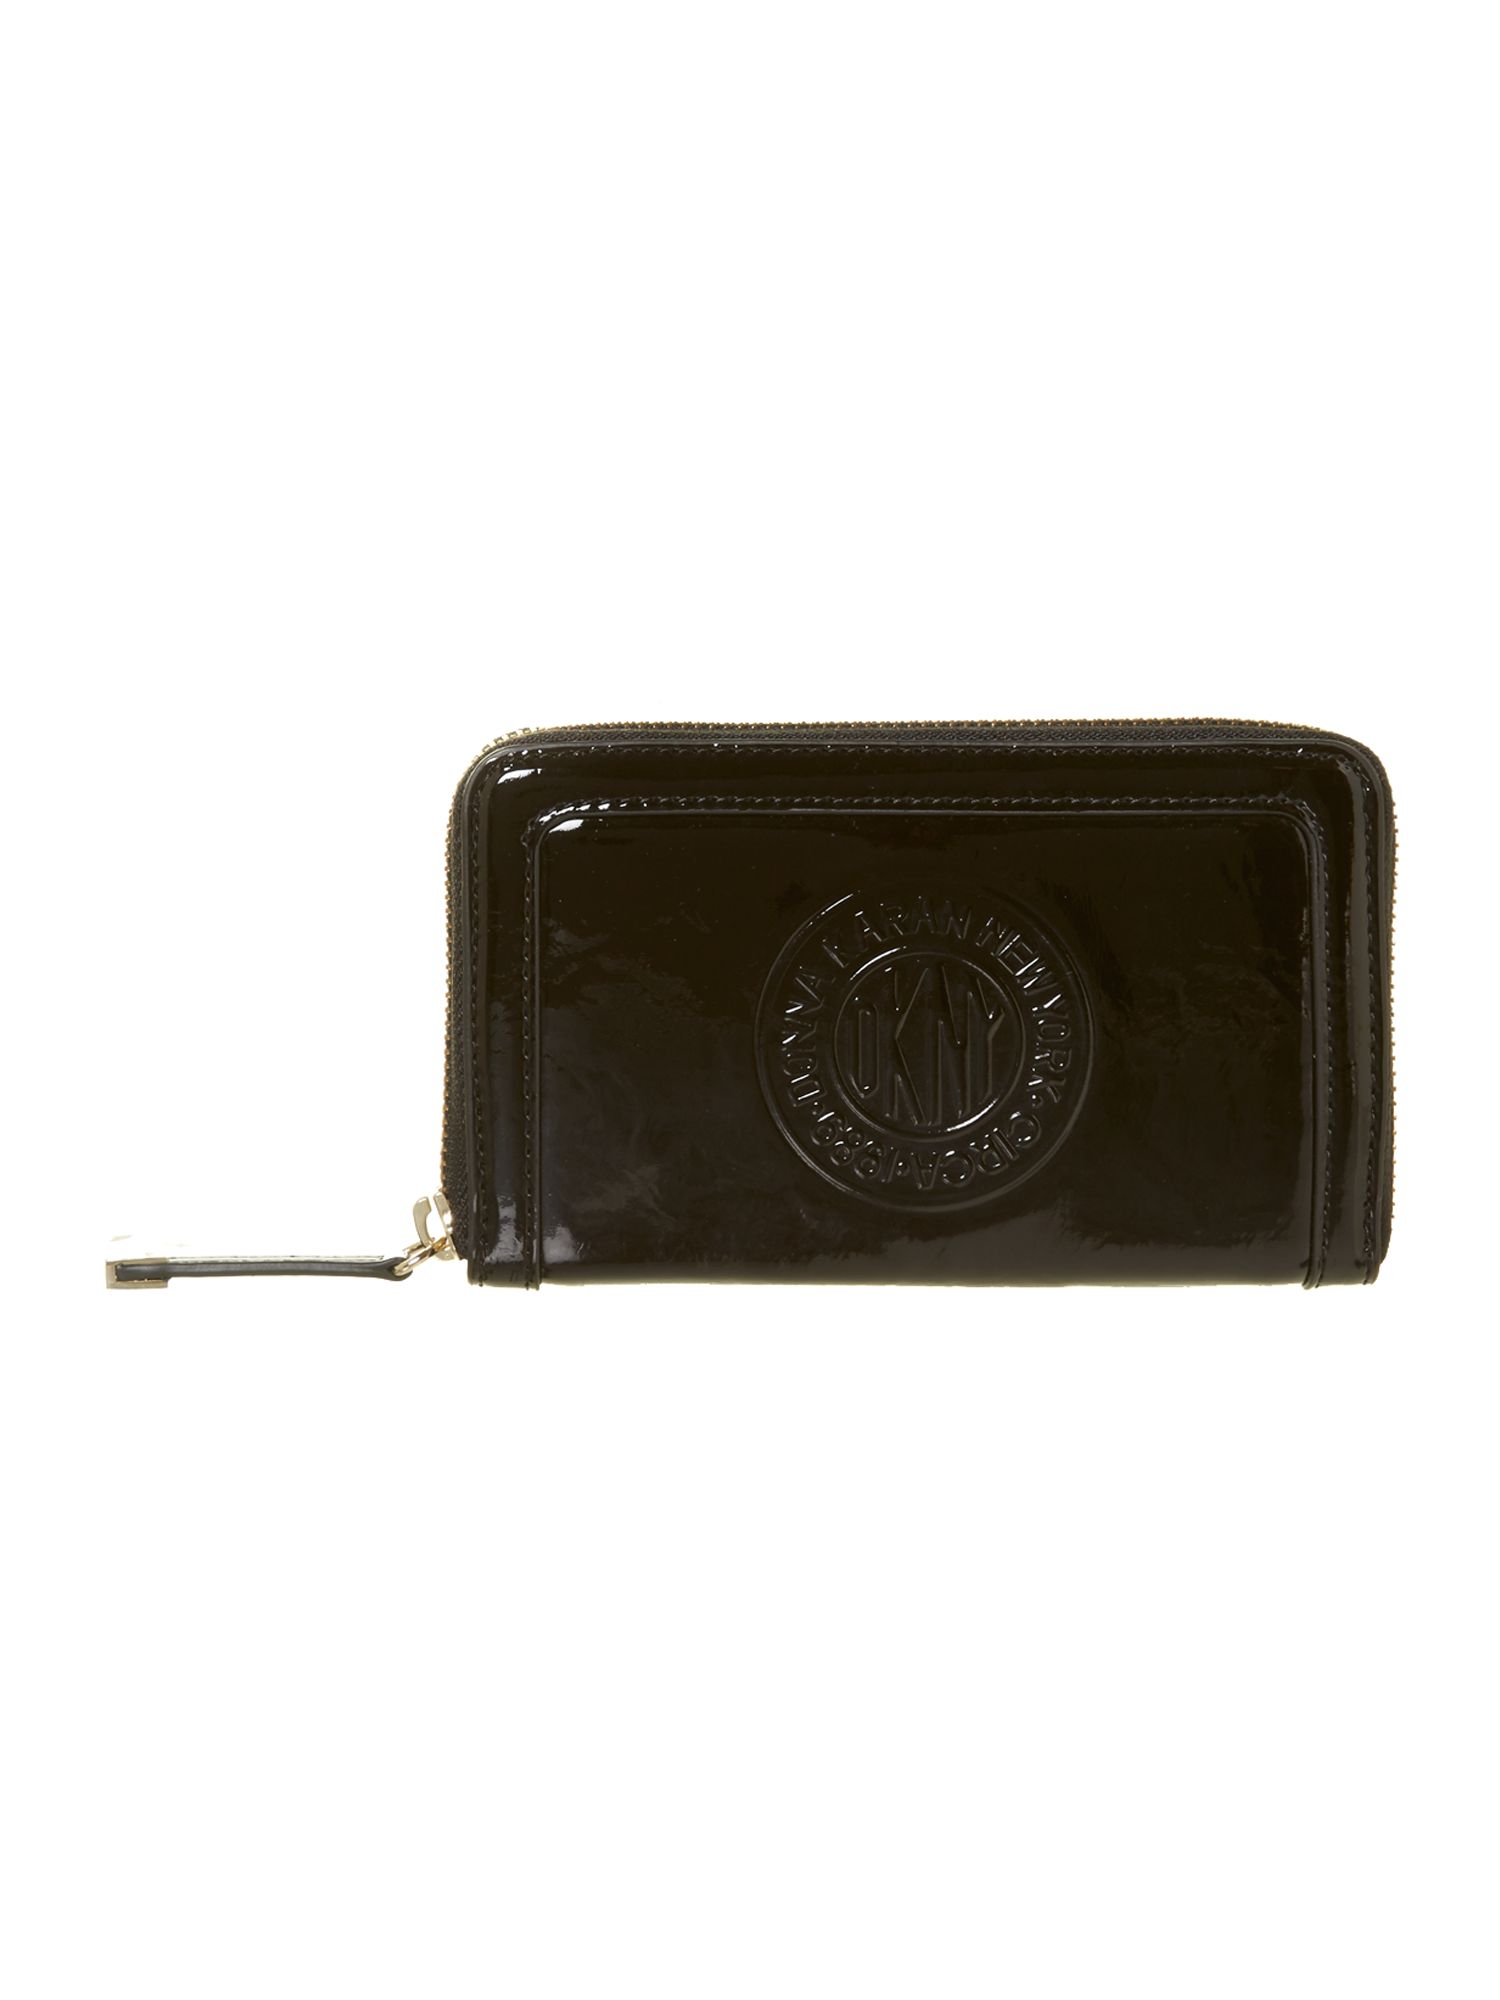 Patent logo black small zip around purse